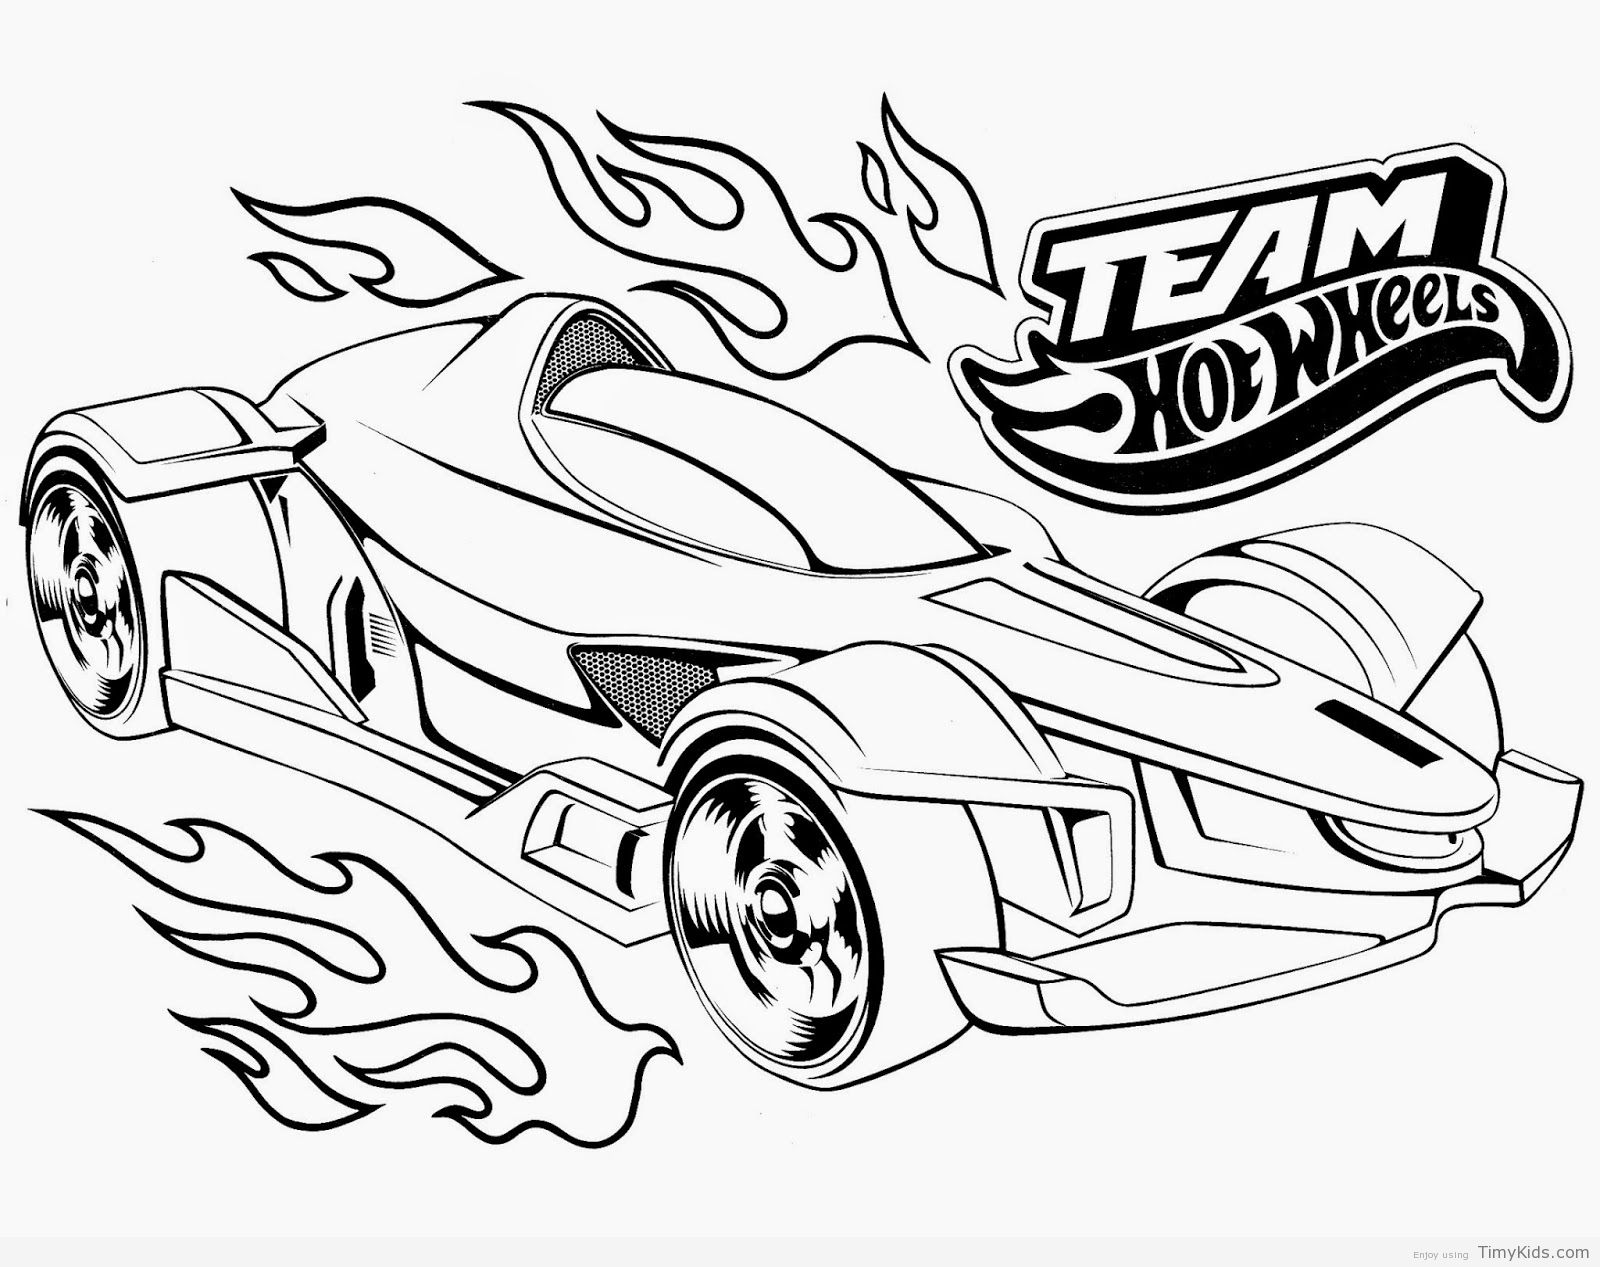 Cars Mack Ausmalbilder : Http Timykids Com Matchbox Cars Coloring Pages Html Colorings